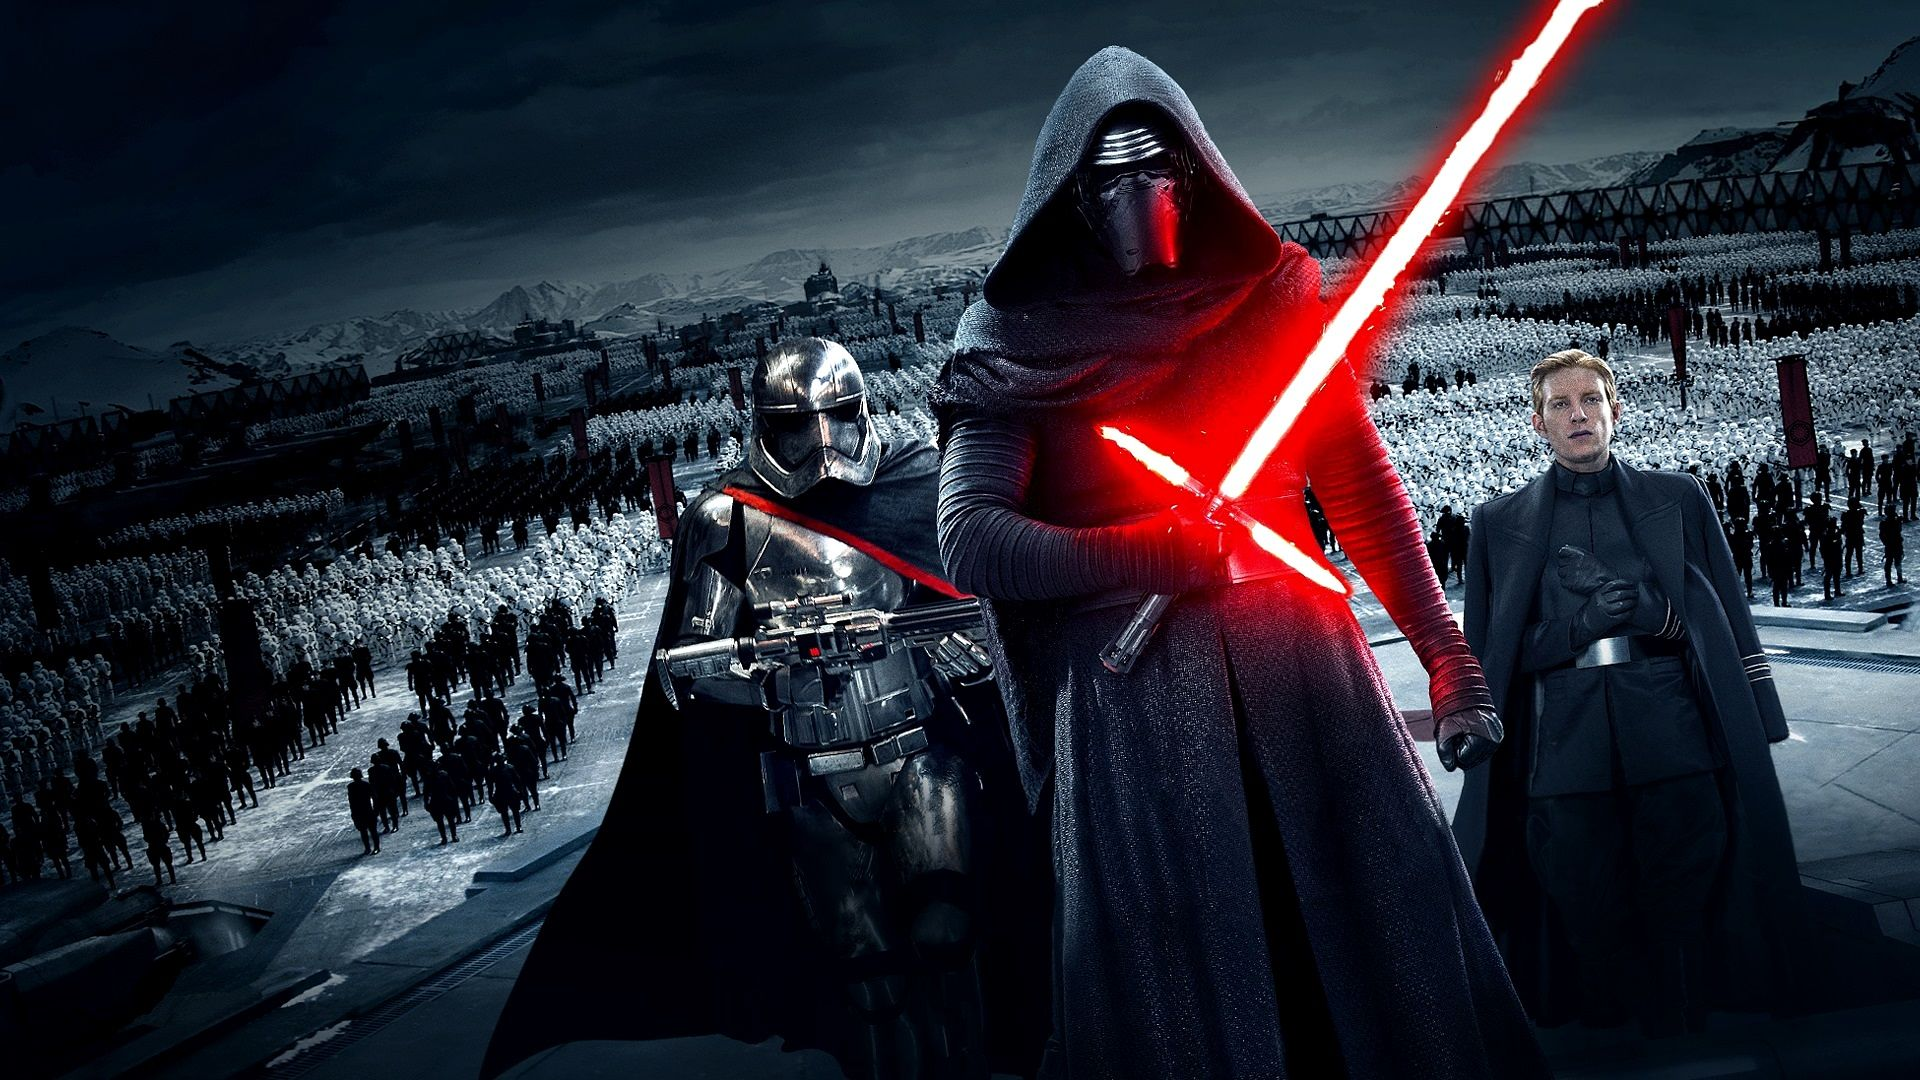 Wars 7 The Force Awakens   Could Kylo Ren Really Be A Skywalker 1920x1080